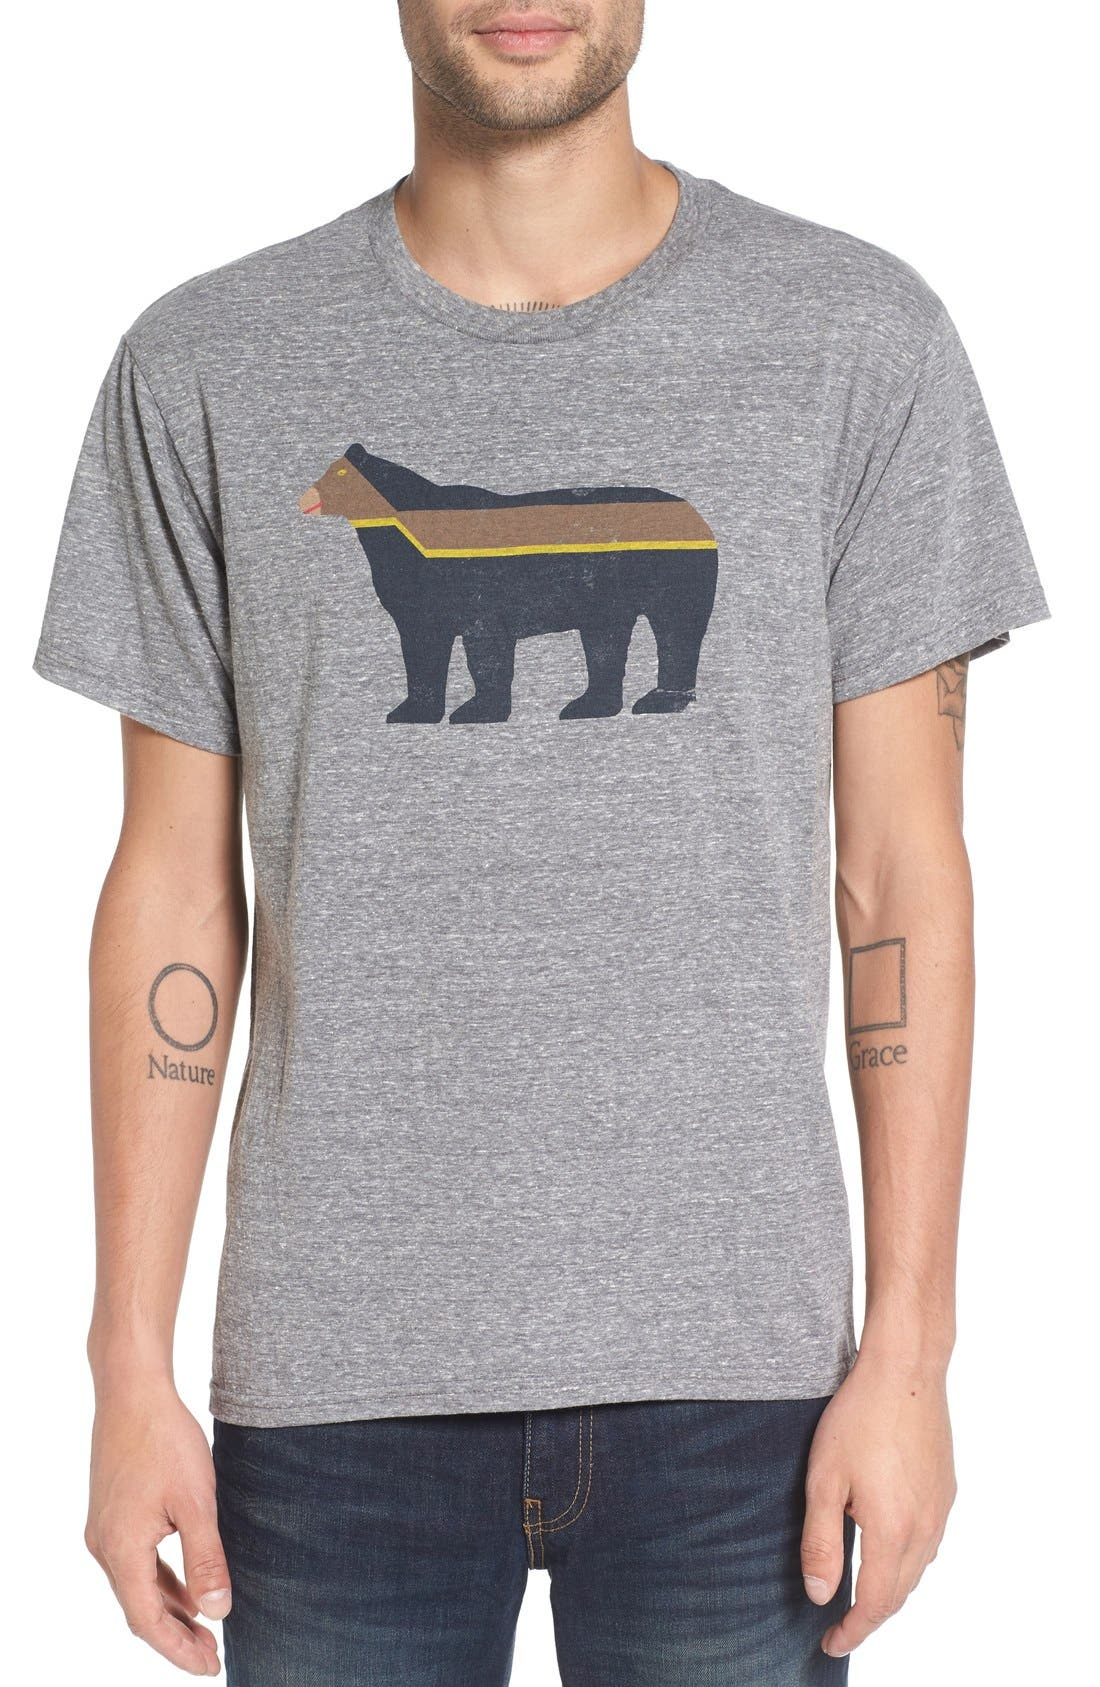 ALTRU 'Big Bear' Graphic T-Shirt